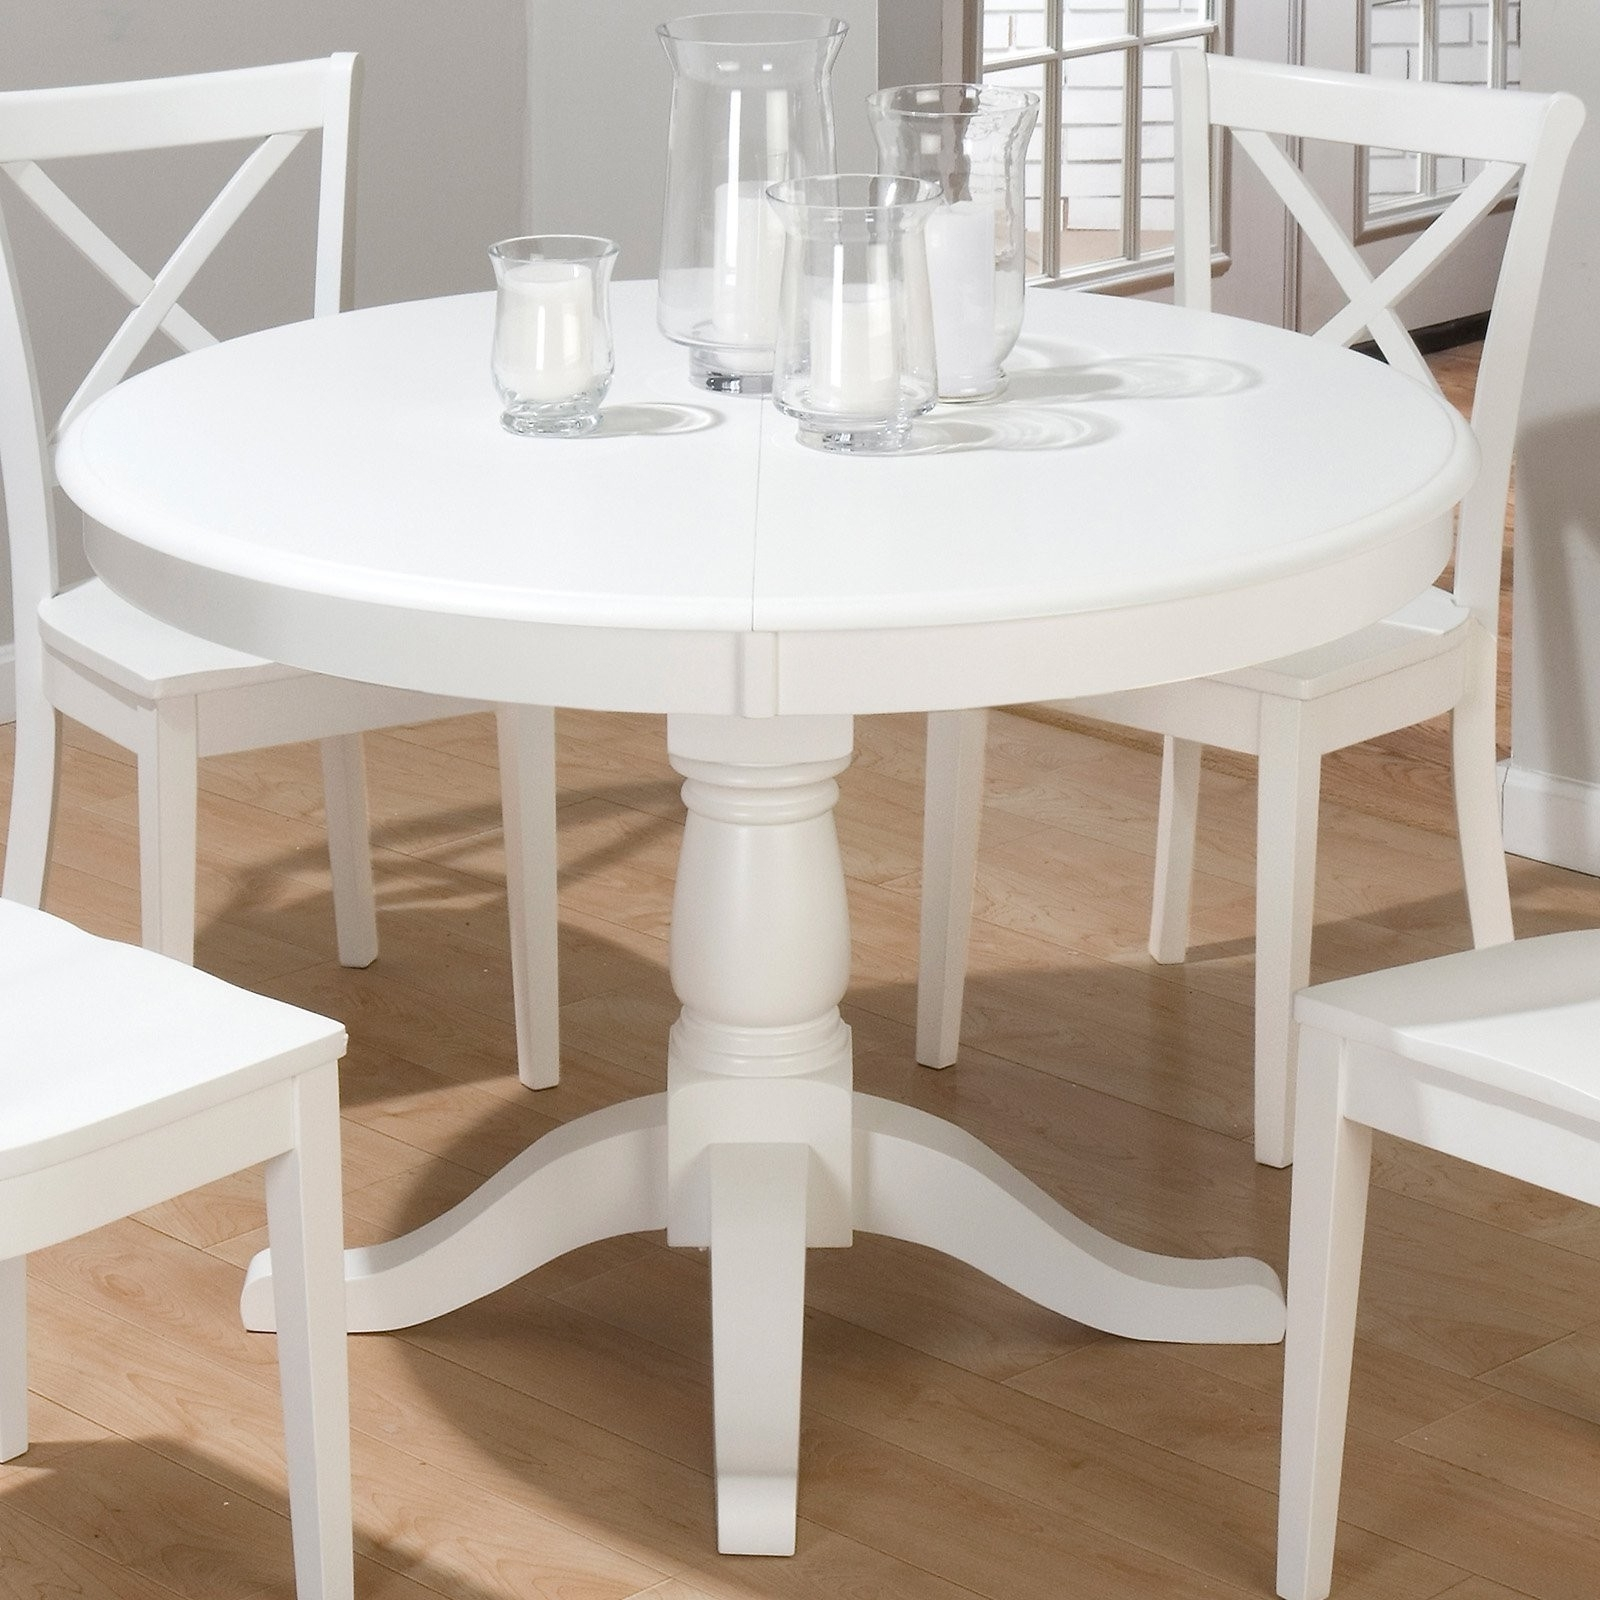 Well Known Extendable Dining Tables For Small Spaces Inspirational White Round Regarding Round White Extendable Dining Tables (View 21 of 25)